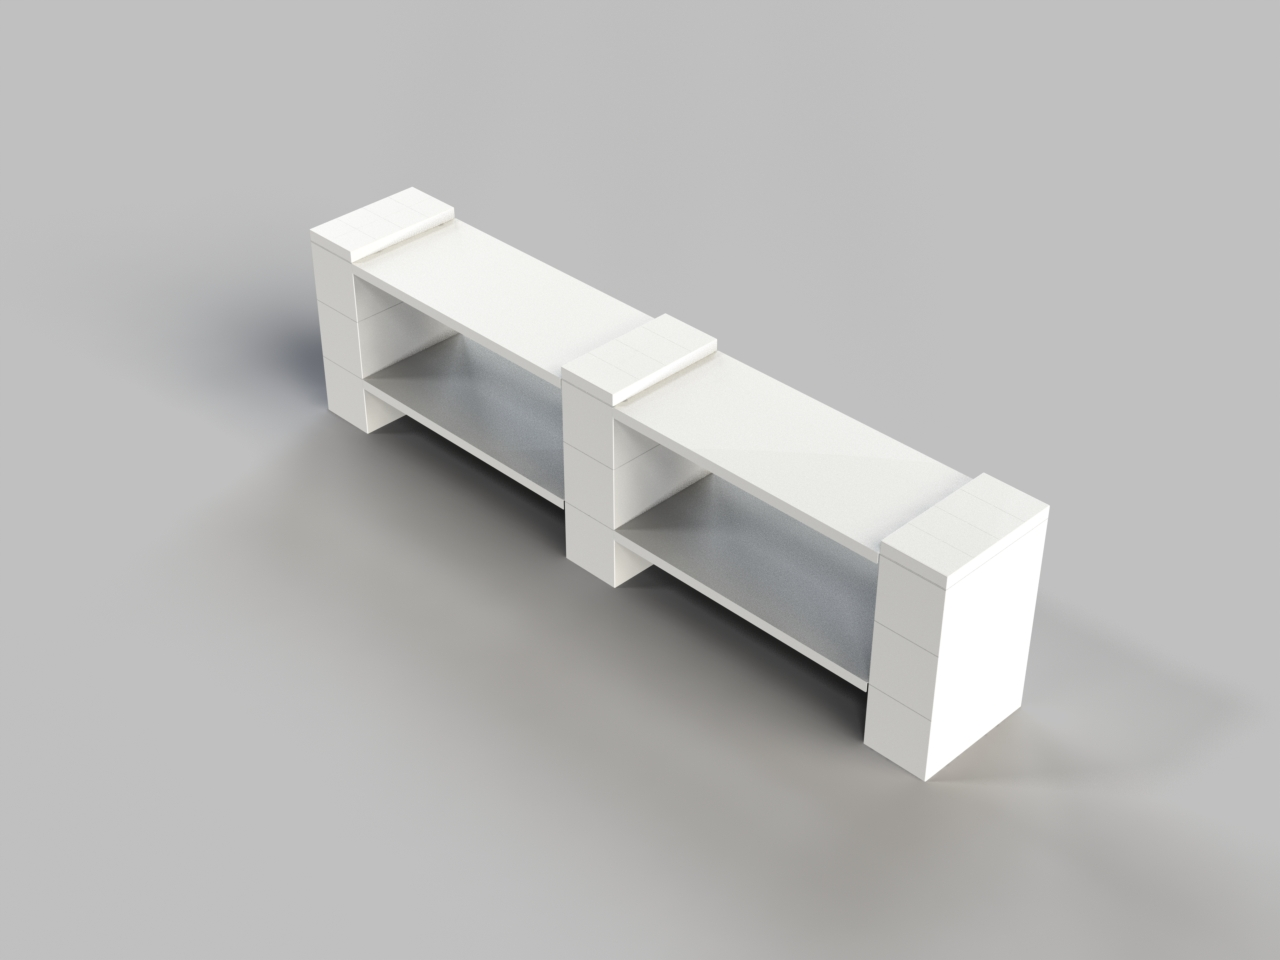 2 Level Double Shelf - Short Version